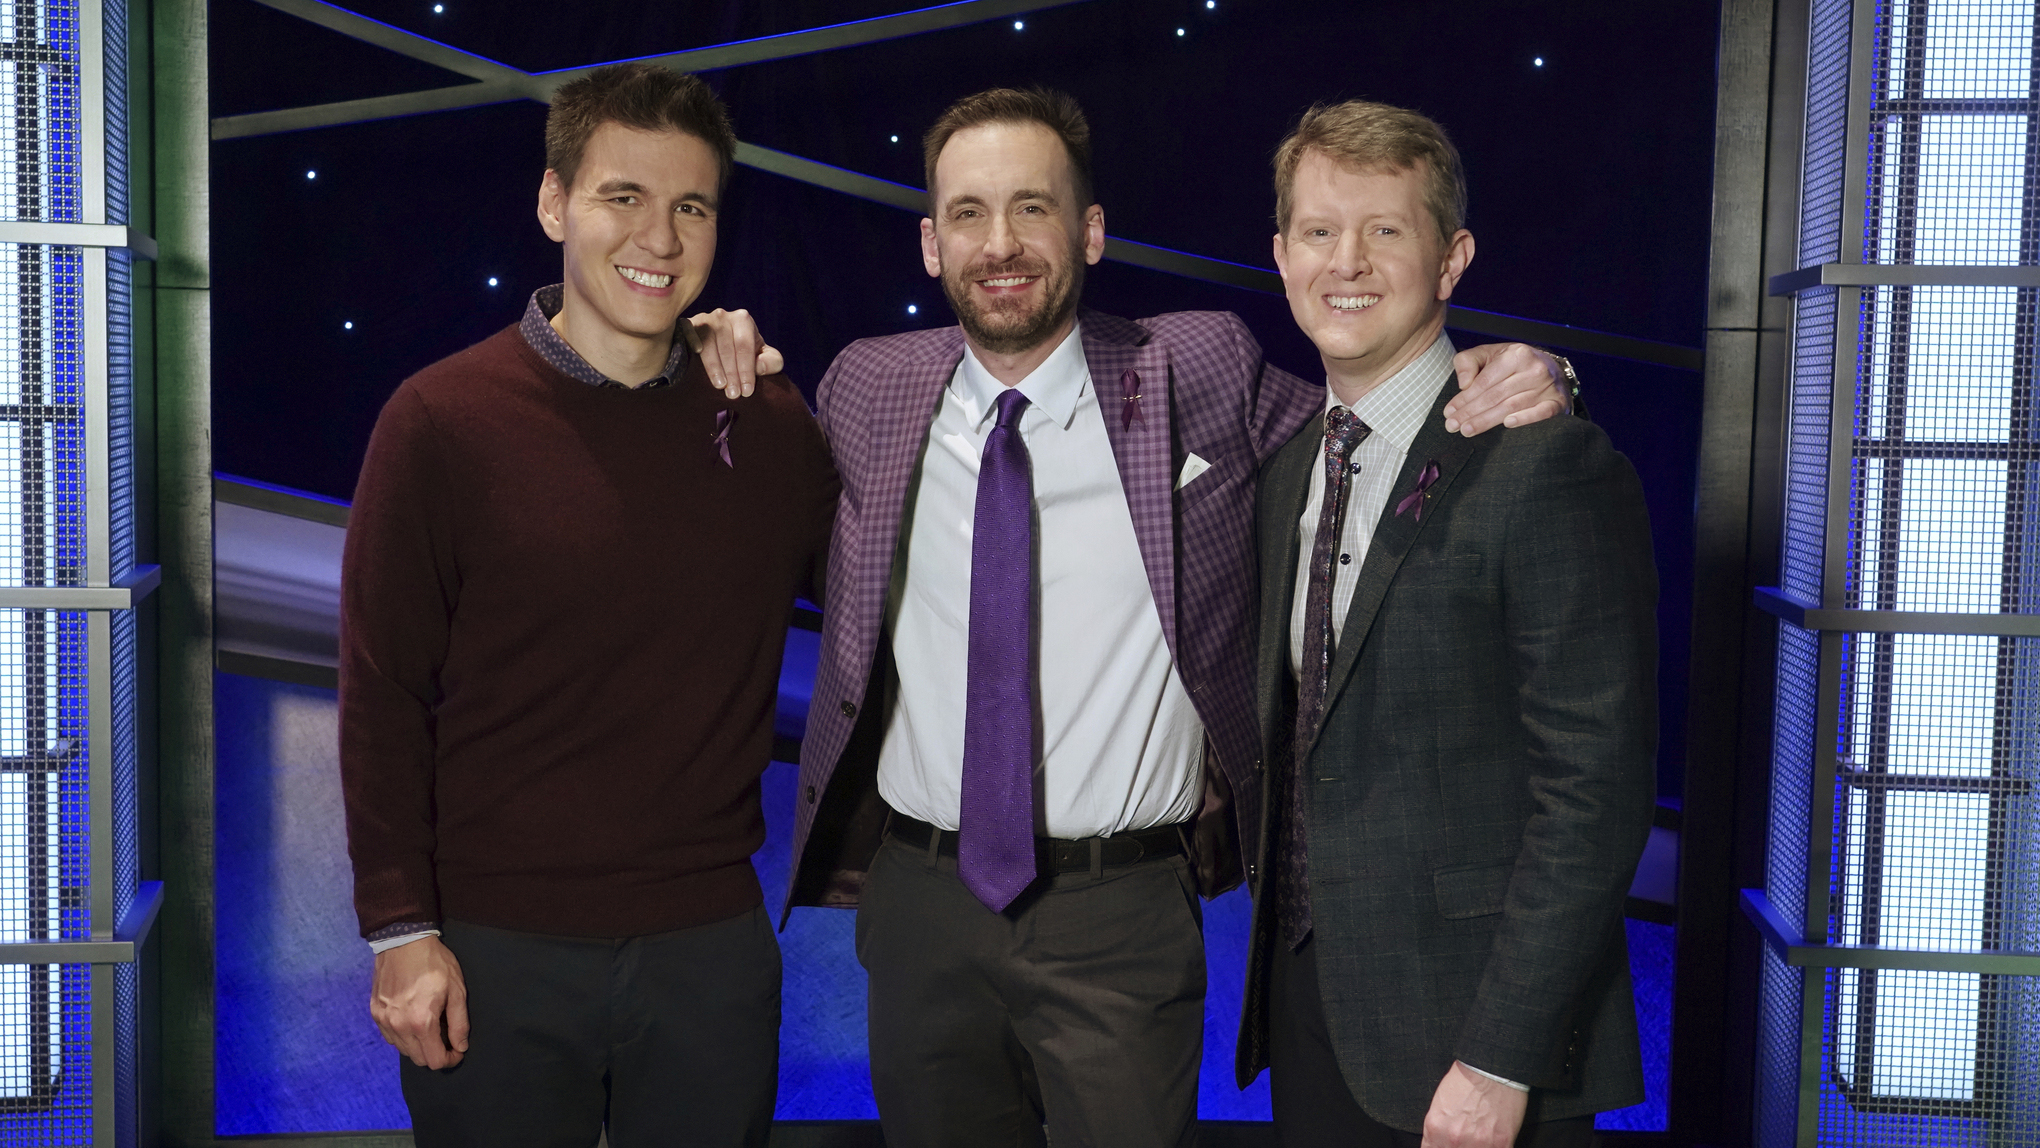 """In this image released by ABC, contestants, from left, James Holzhauer, Brad Rutter and Ken Jennings appear on the set of """"Jeopardy!"""" in Los Angeles (Eric McCandless/ABC via AP)"""